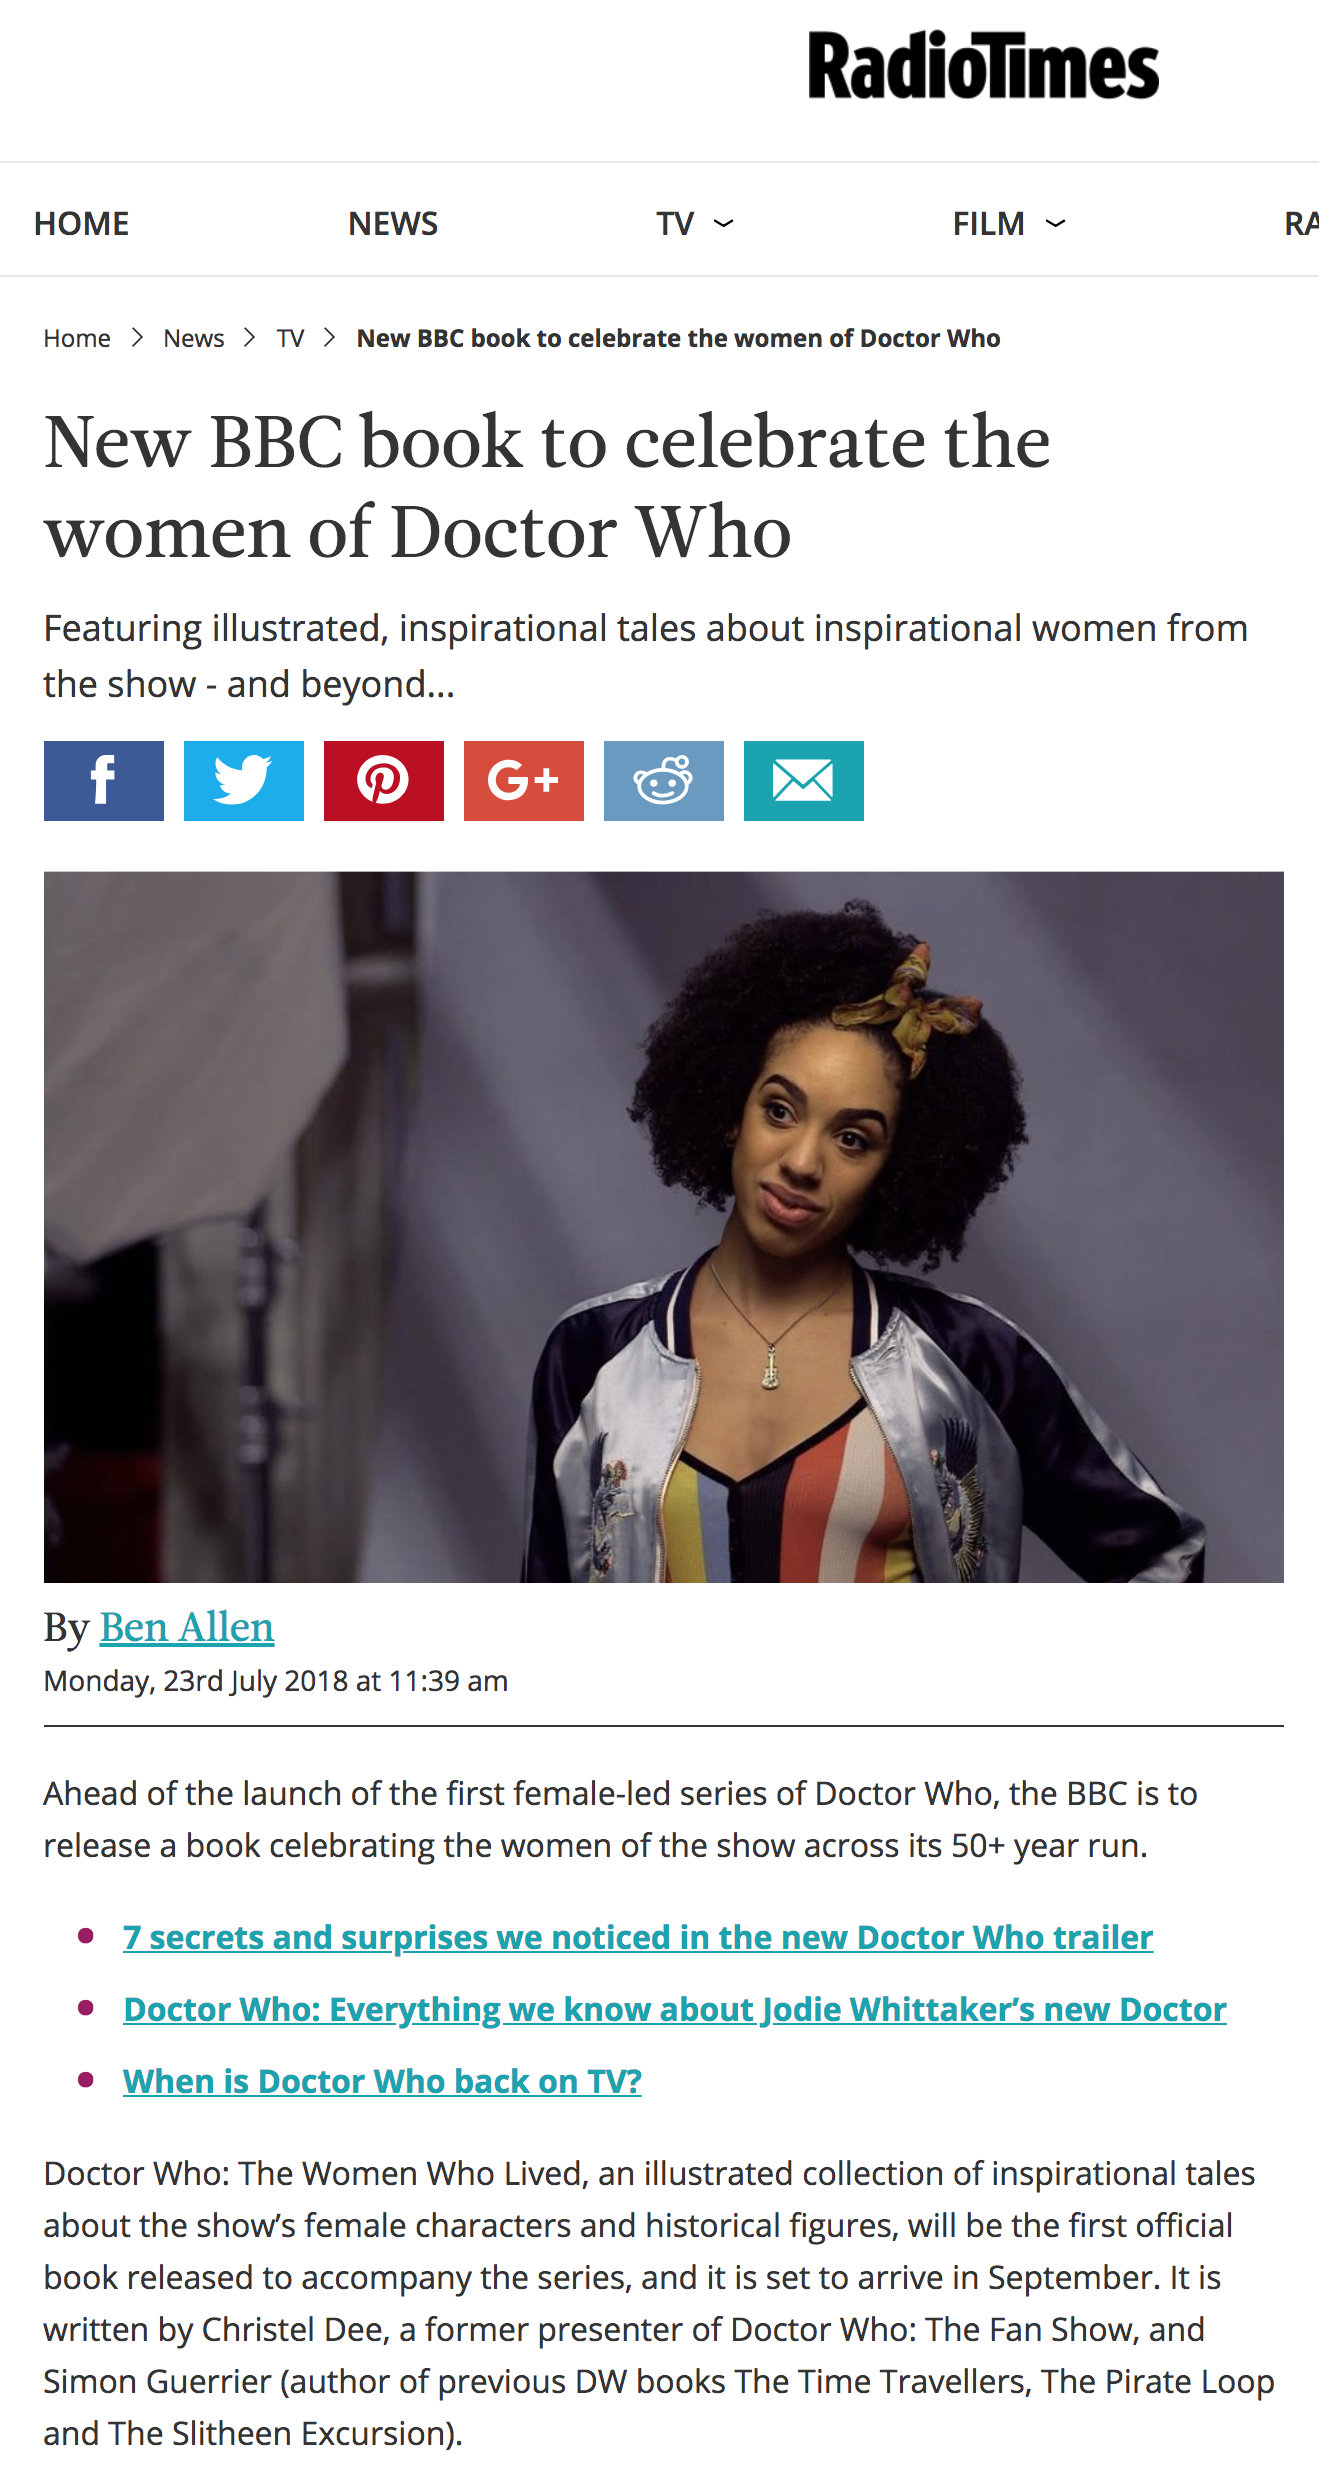 screencapture-radiotimes-news-tv-2018-07-23-doctor-who-women-who-lived-book-2018-08-14-23_55_29 copy.png